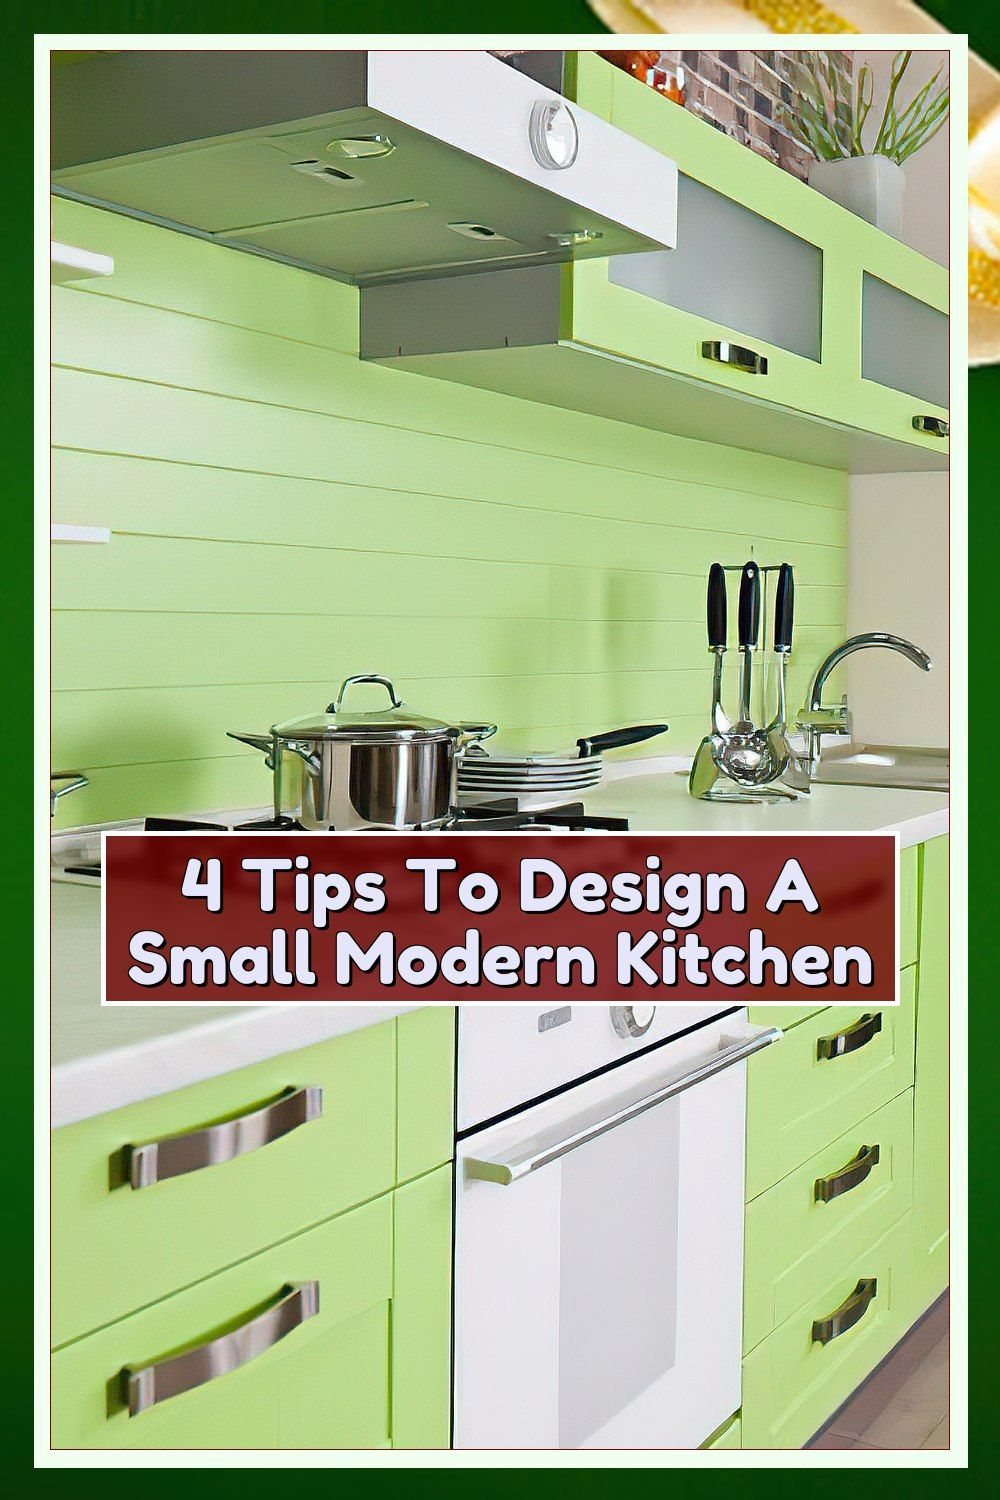 5 Modern Kitchen Designs For Small Spaces Kitchen Decor Tips In 2021 Small Modern Kitchens Modern Kitchen Design Modern Kitchen